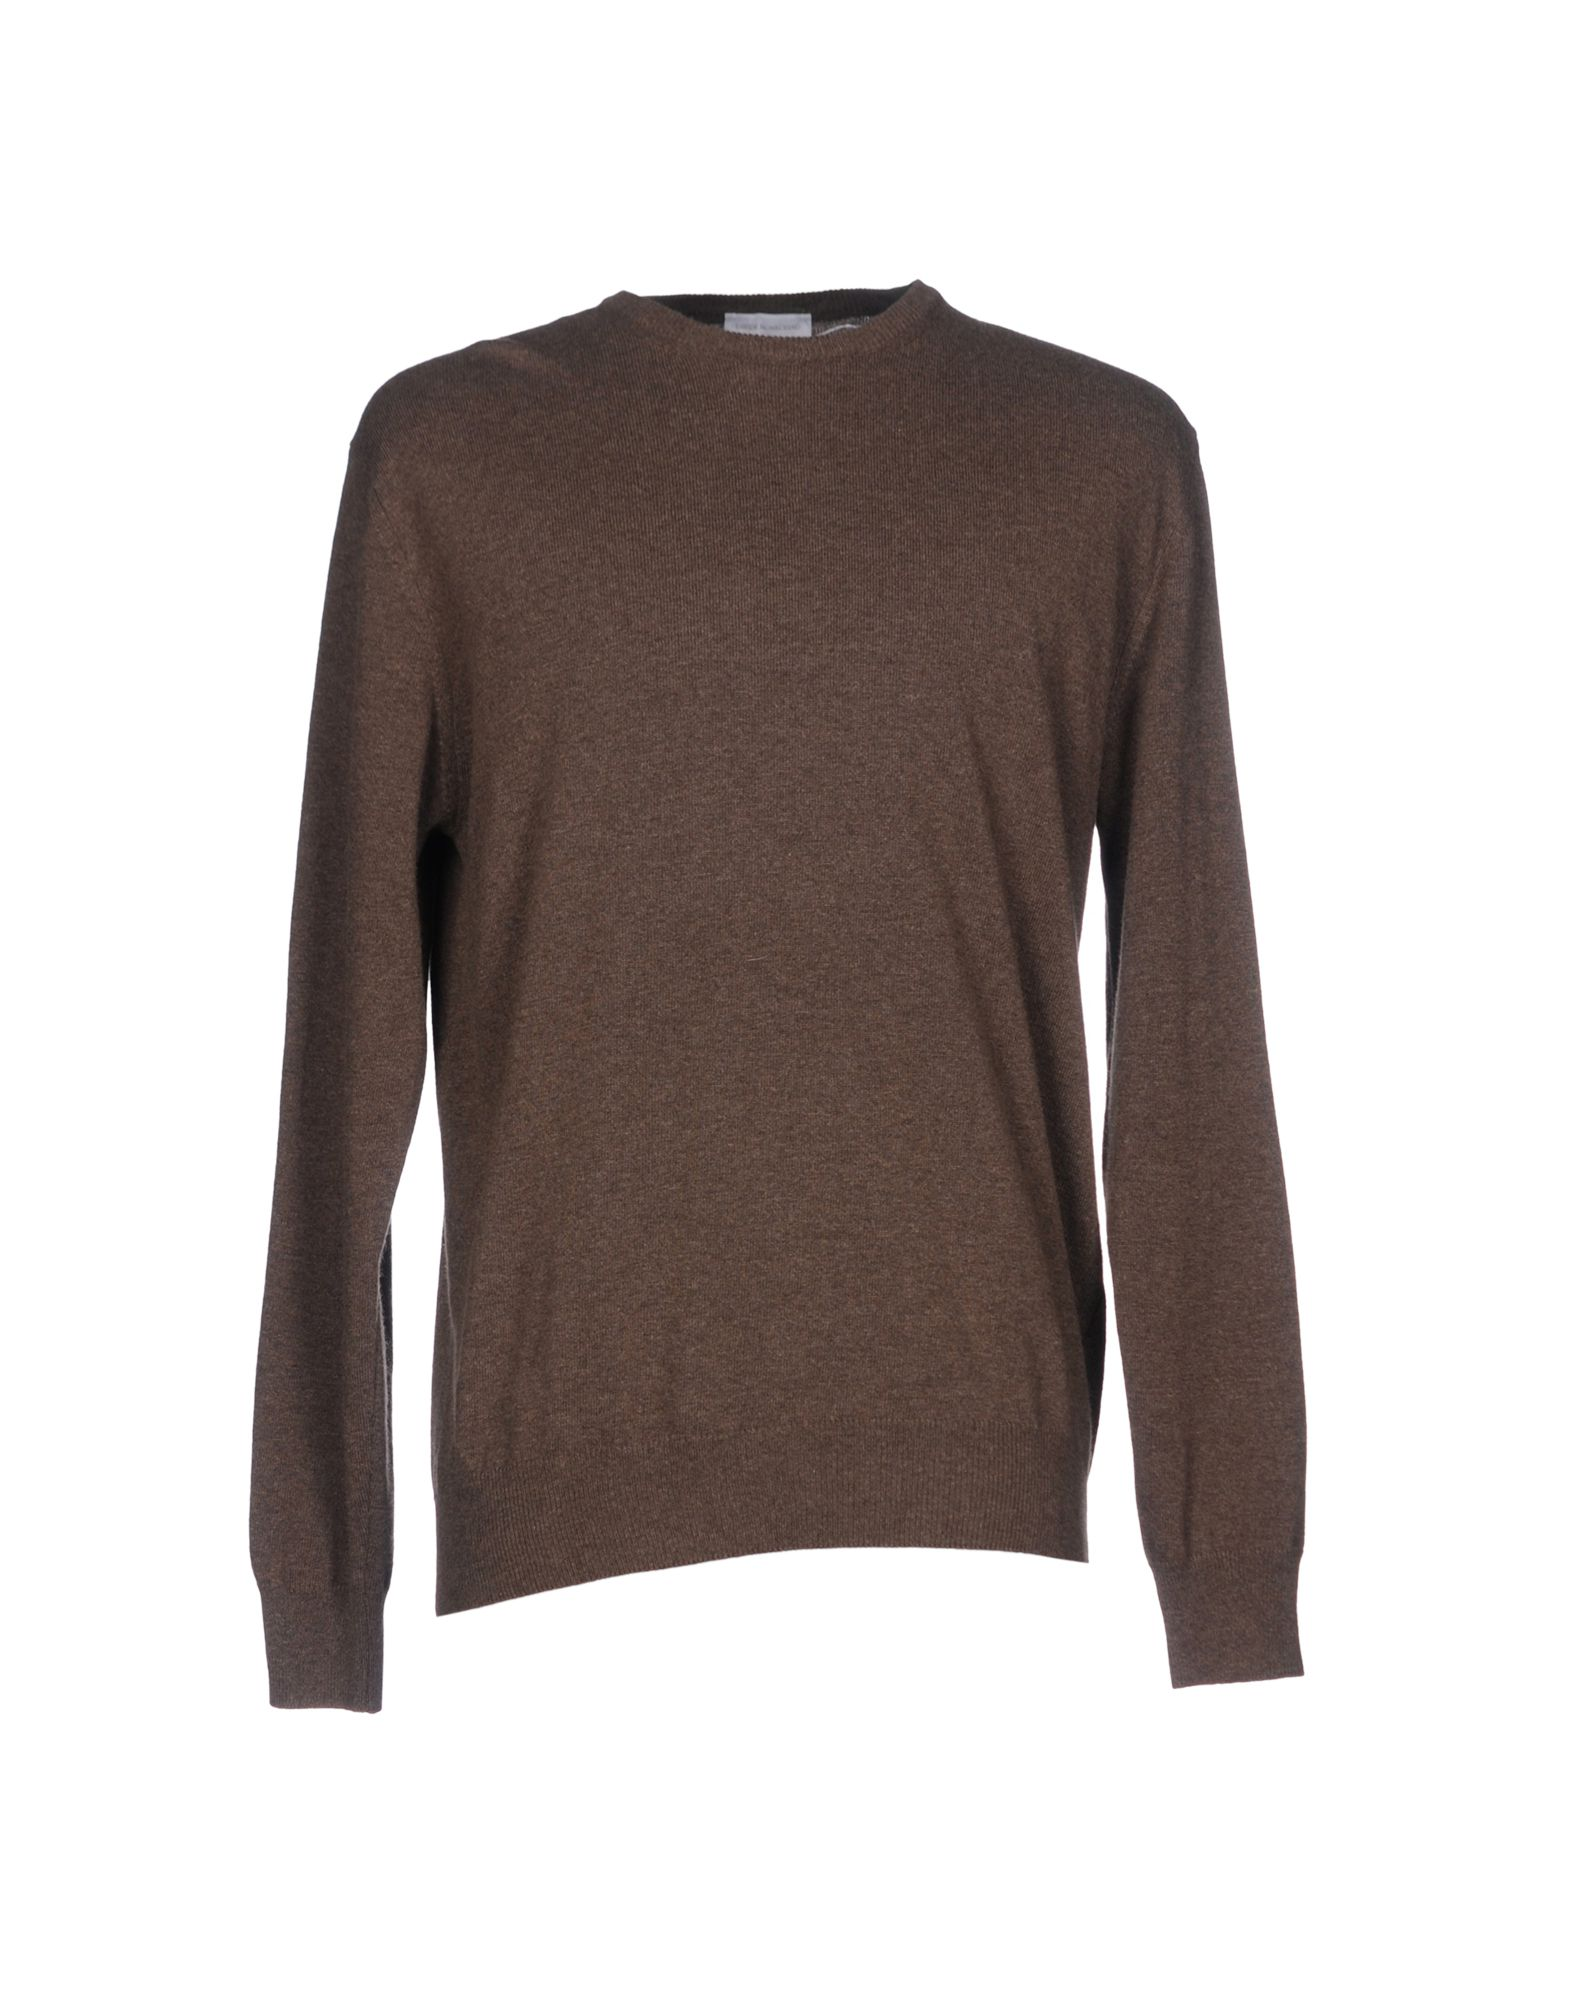 DAVIDE MONACHINO CASHMERE Свитер davide monachino cashmere кардиган